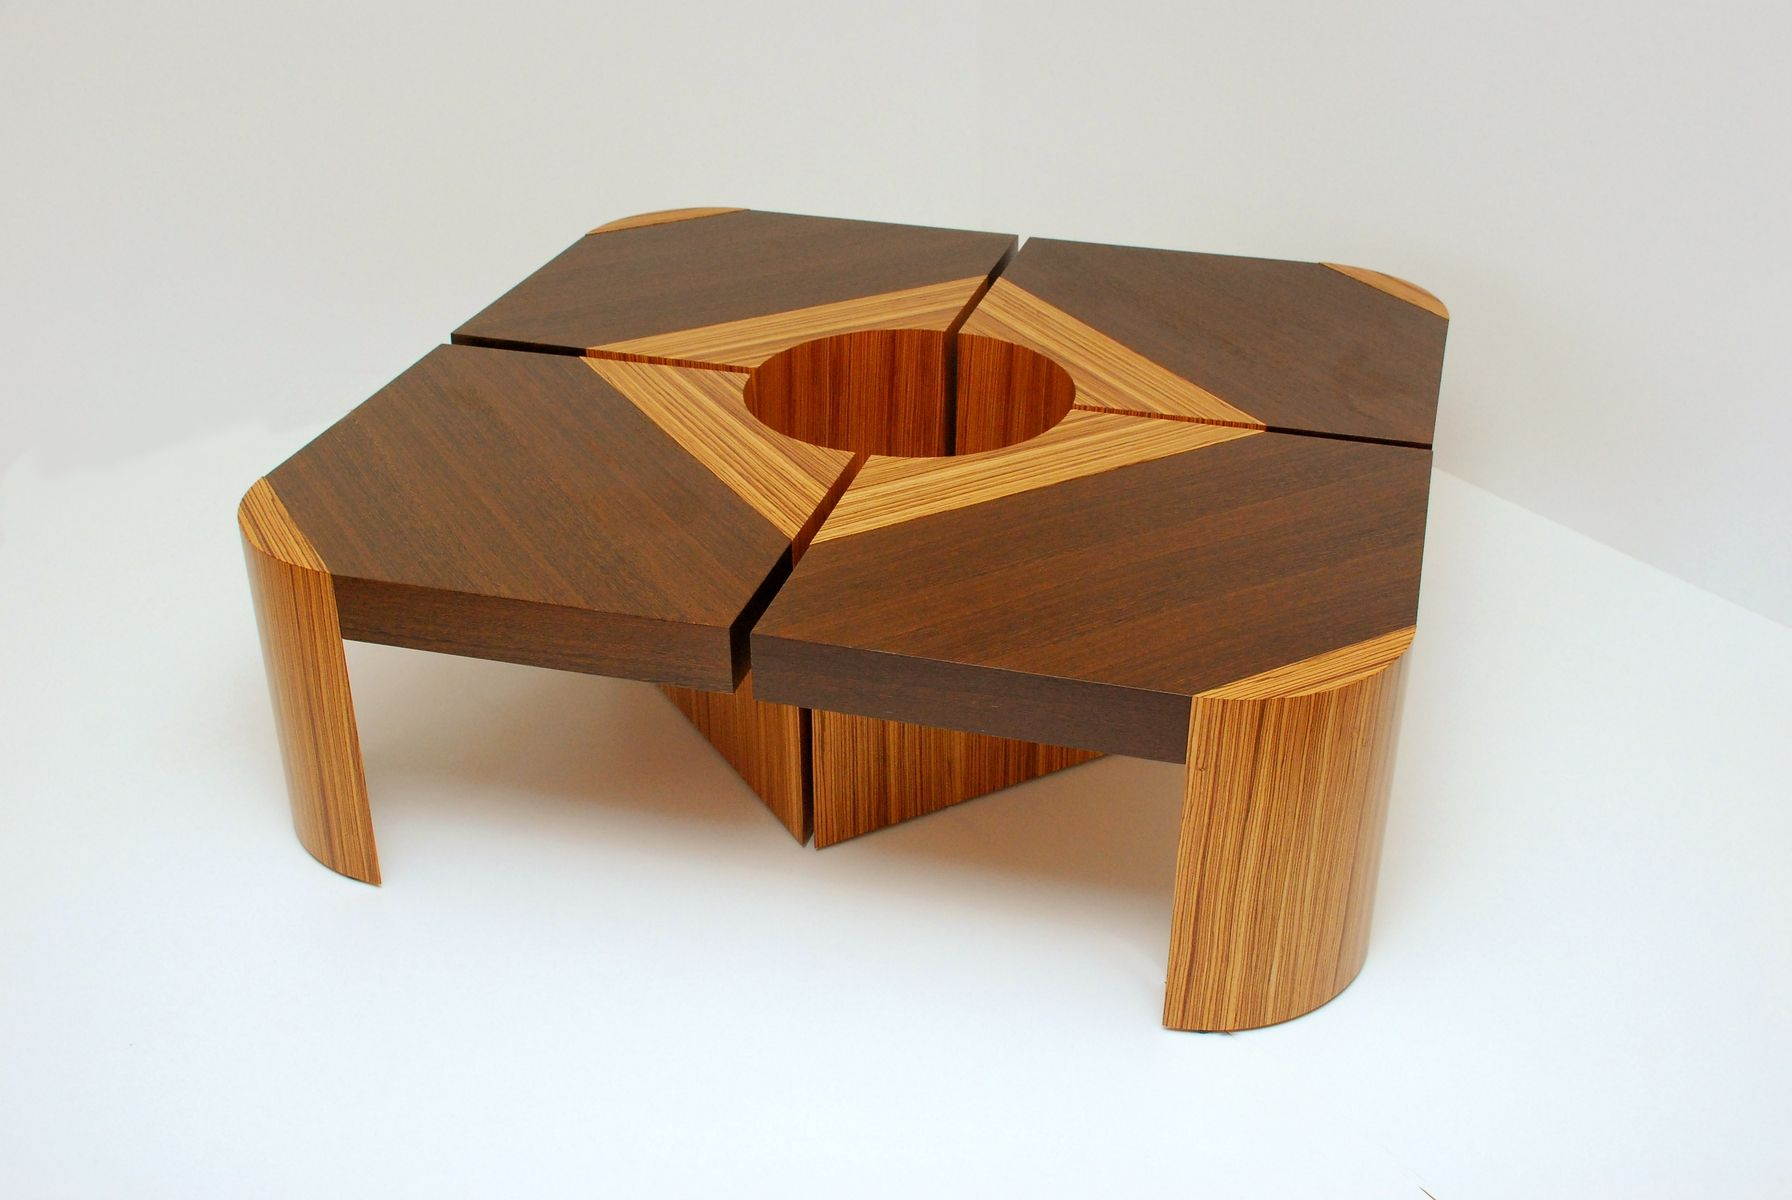 Handmade bloom table set wenge zebra wood by furniture by design - Wood furniture design ...